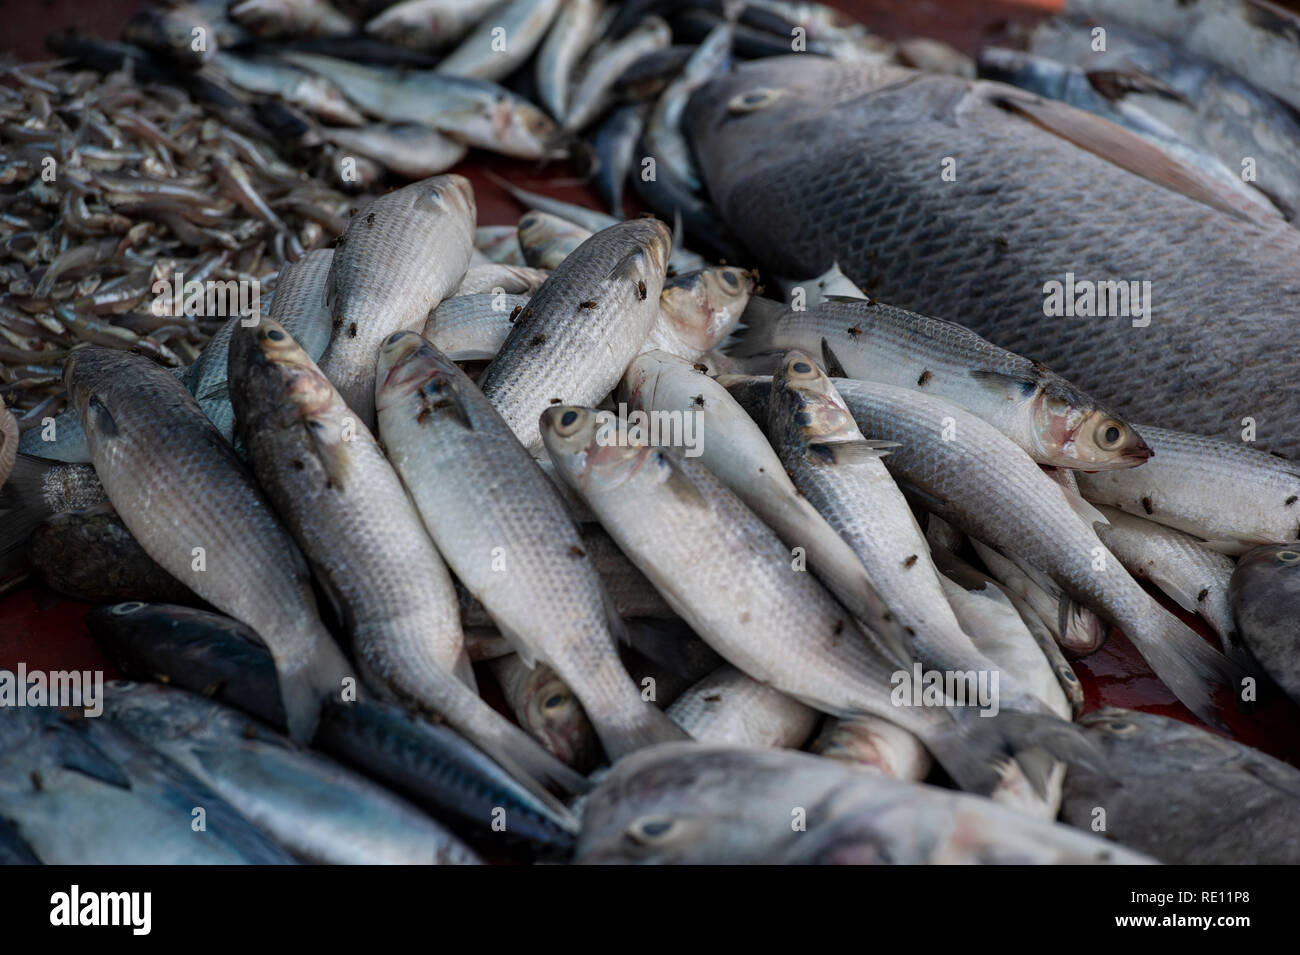 Fish covered in flies in an Indian fish market - Stock Image